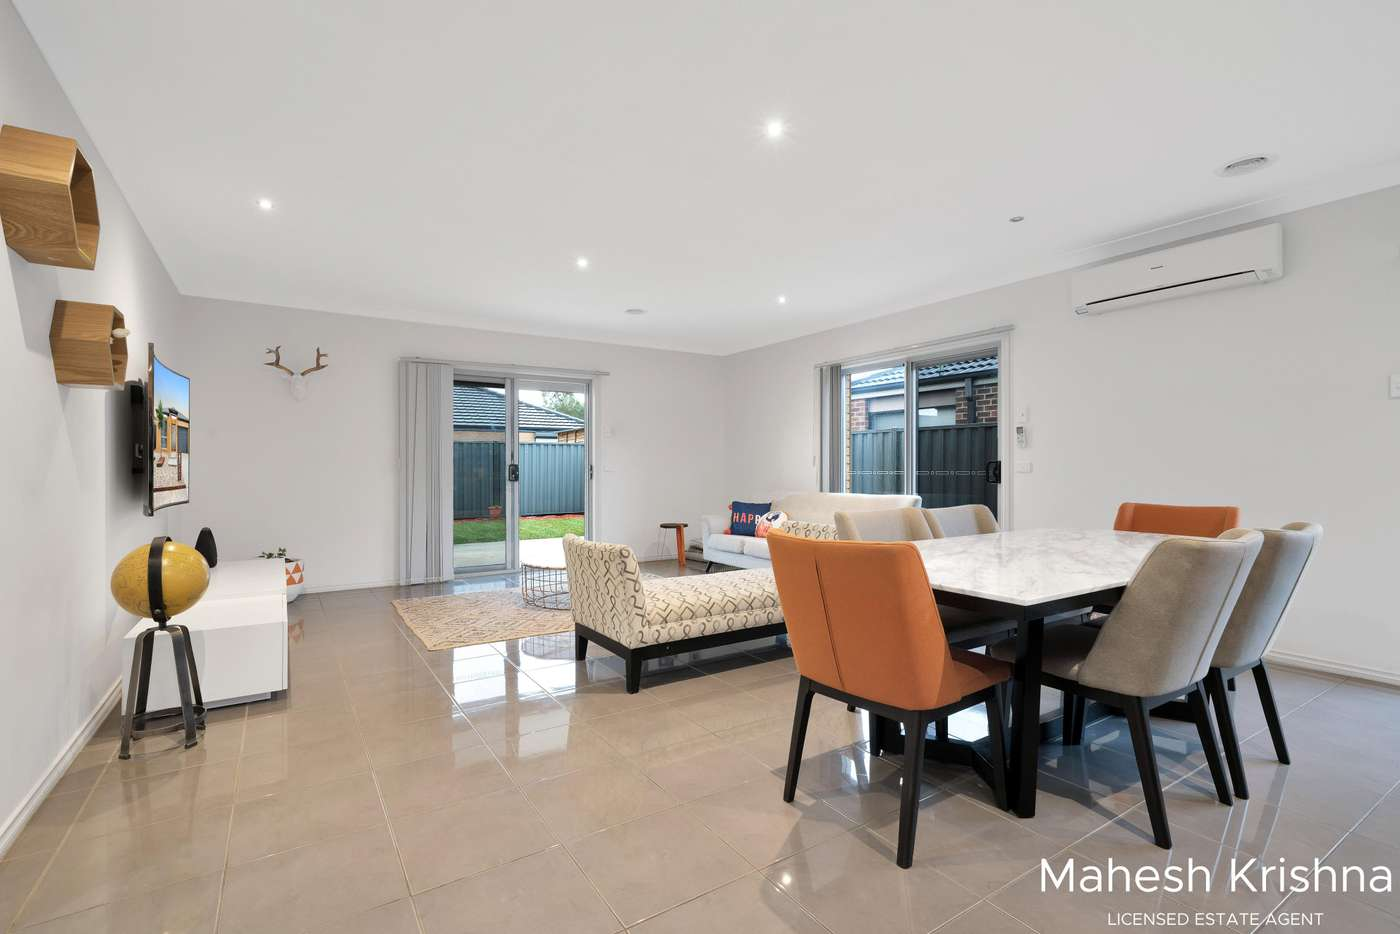 Fifth view of Homely house listing, 26 Holloway Street, Manor Lakes VIC 3024